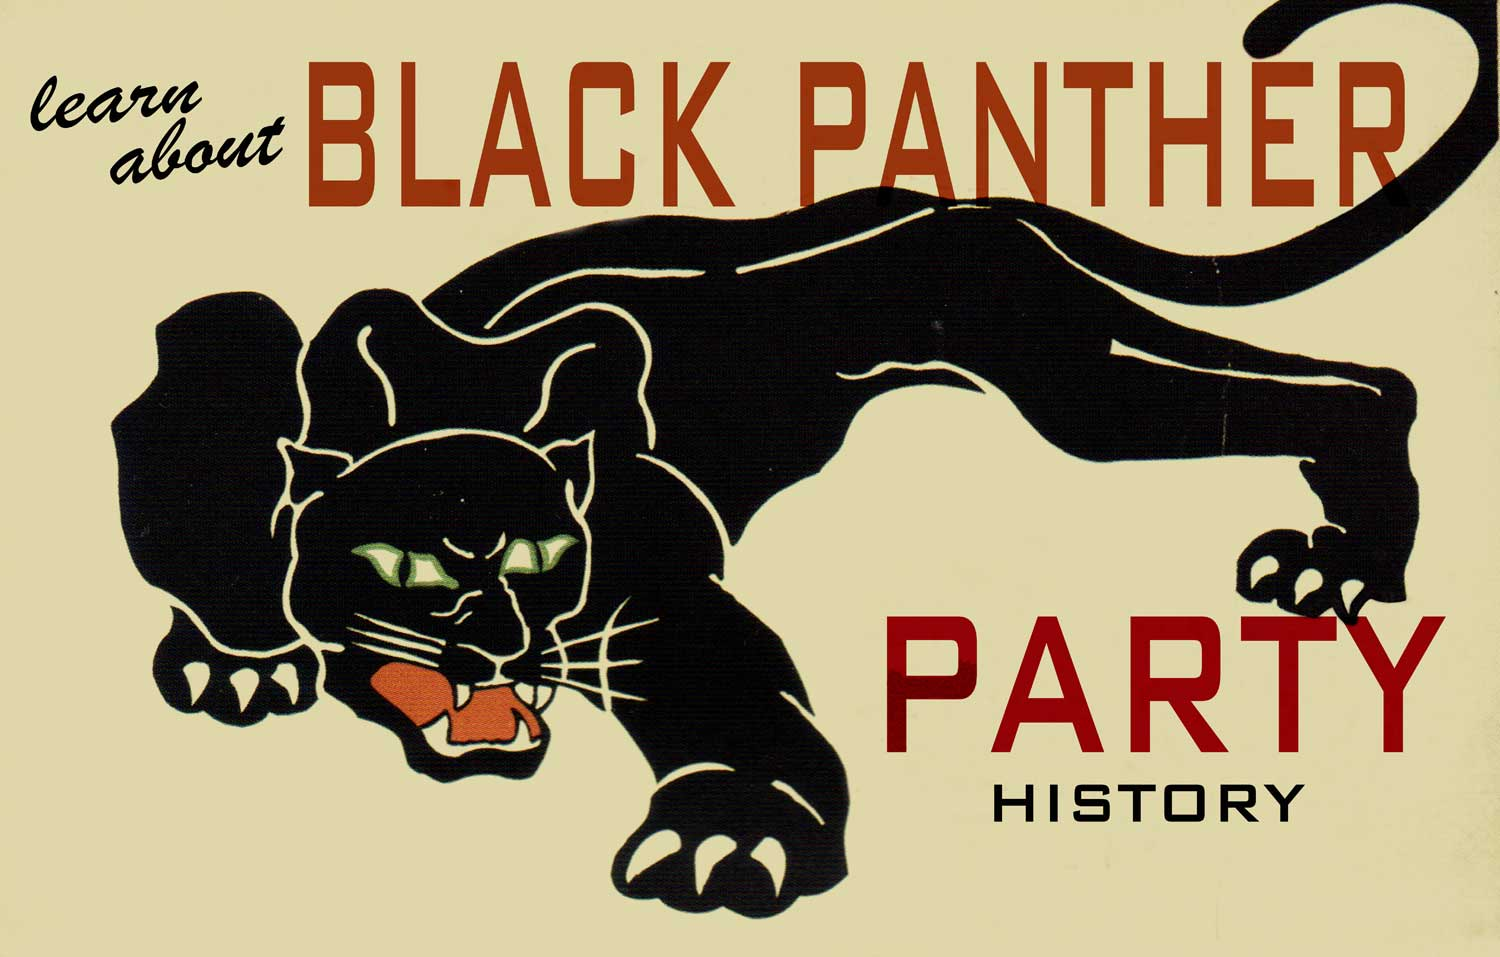 black panther party The new black panther party for self-defense (nbpp) is a us-based black nationalist organization founded in dallas, texas, in 1989 despite its name, the nbpp is not an official successor to the black panther party.